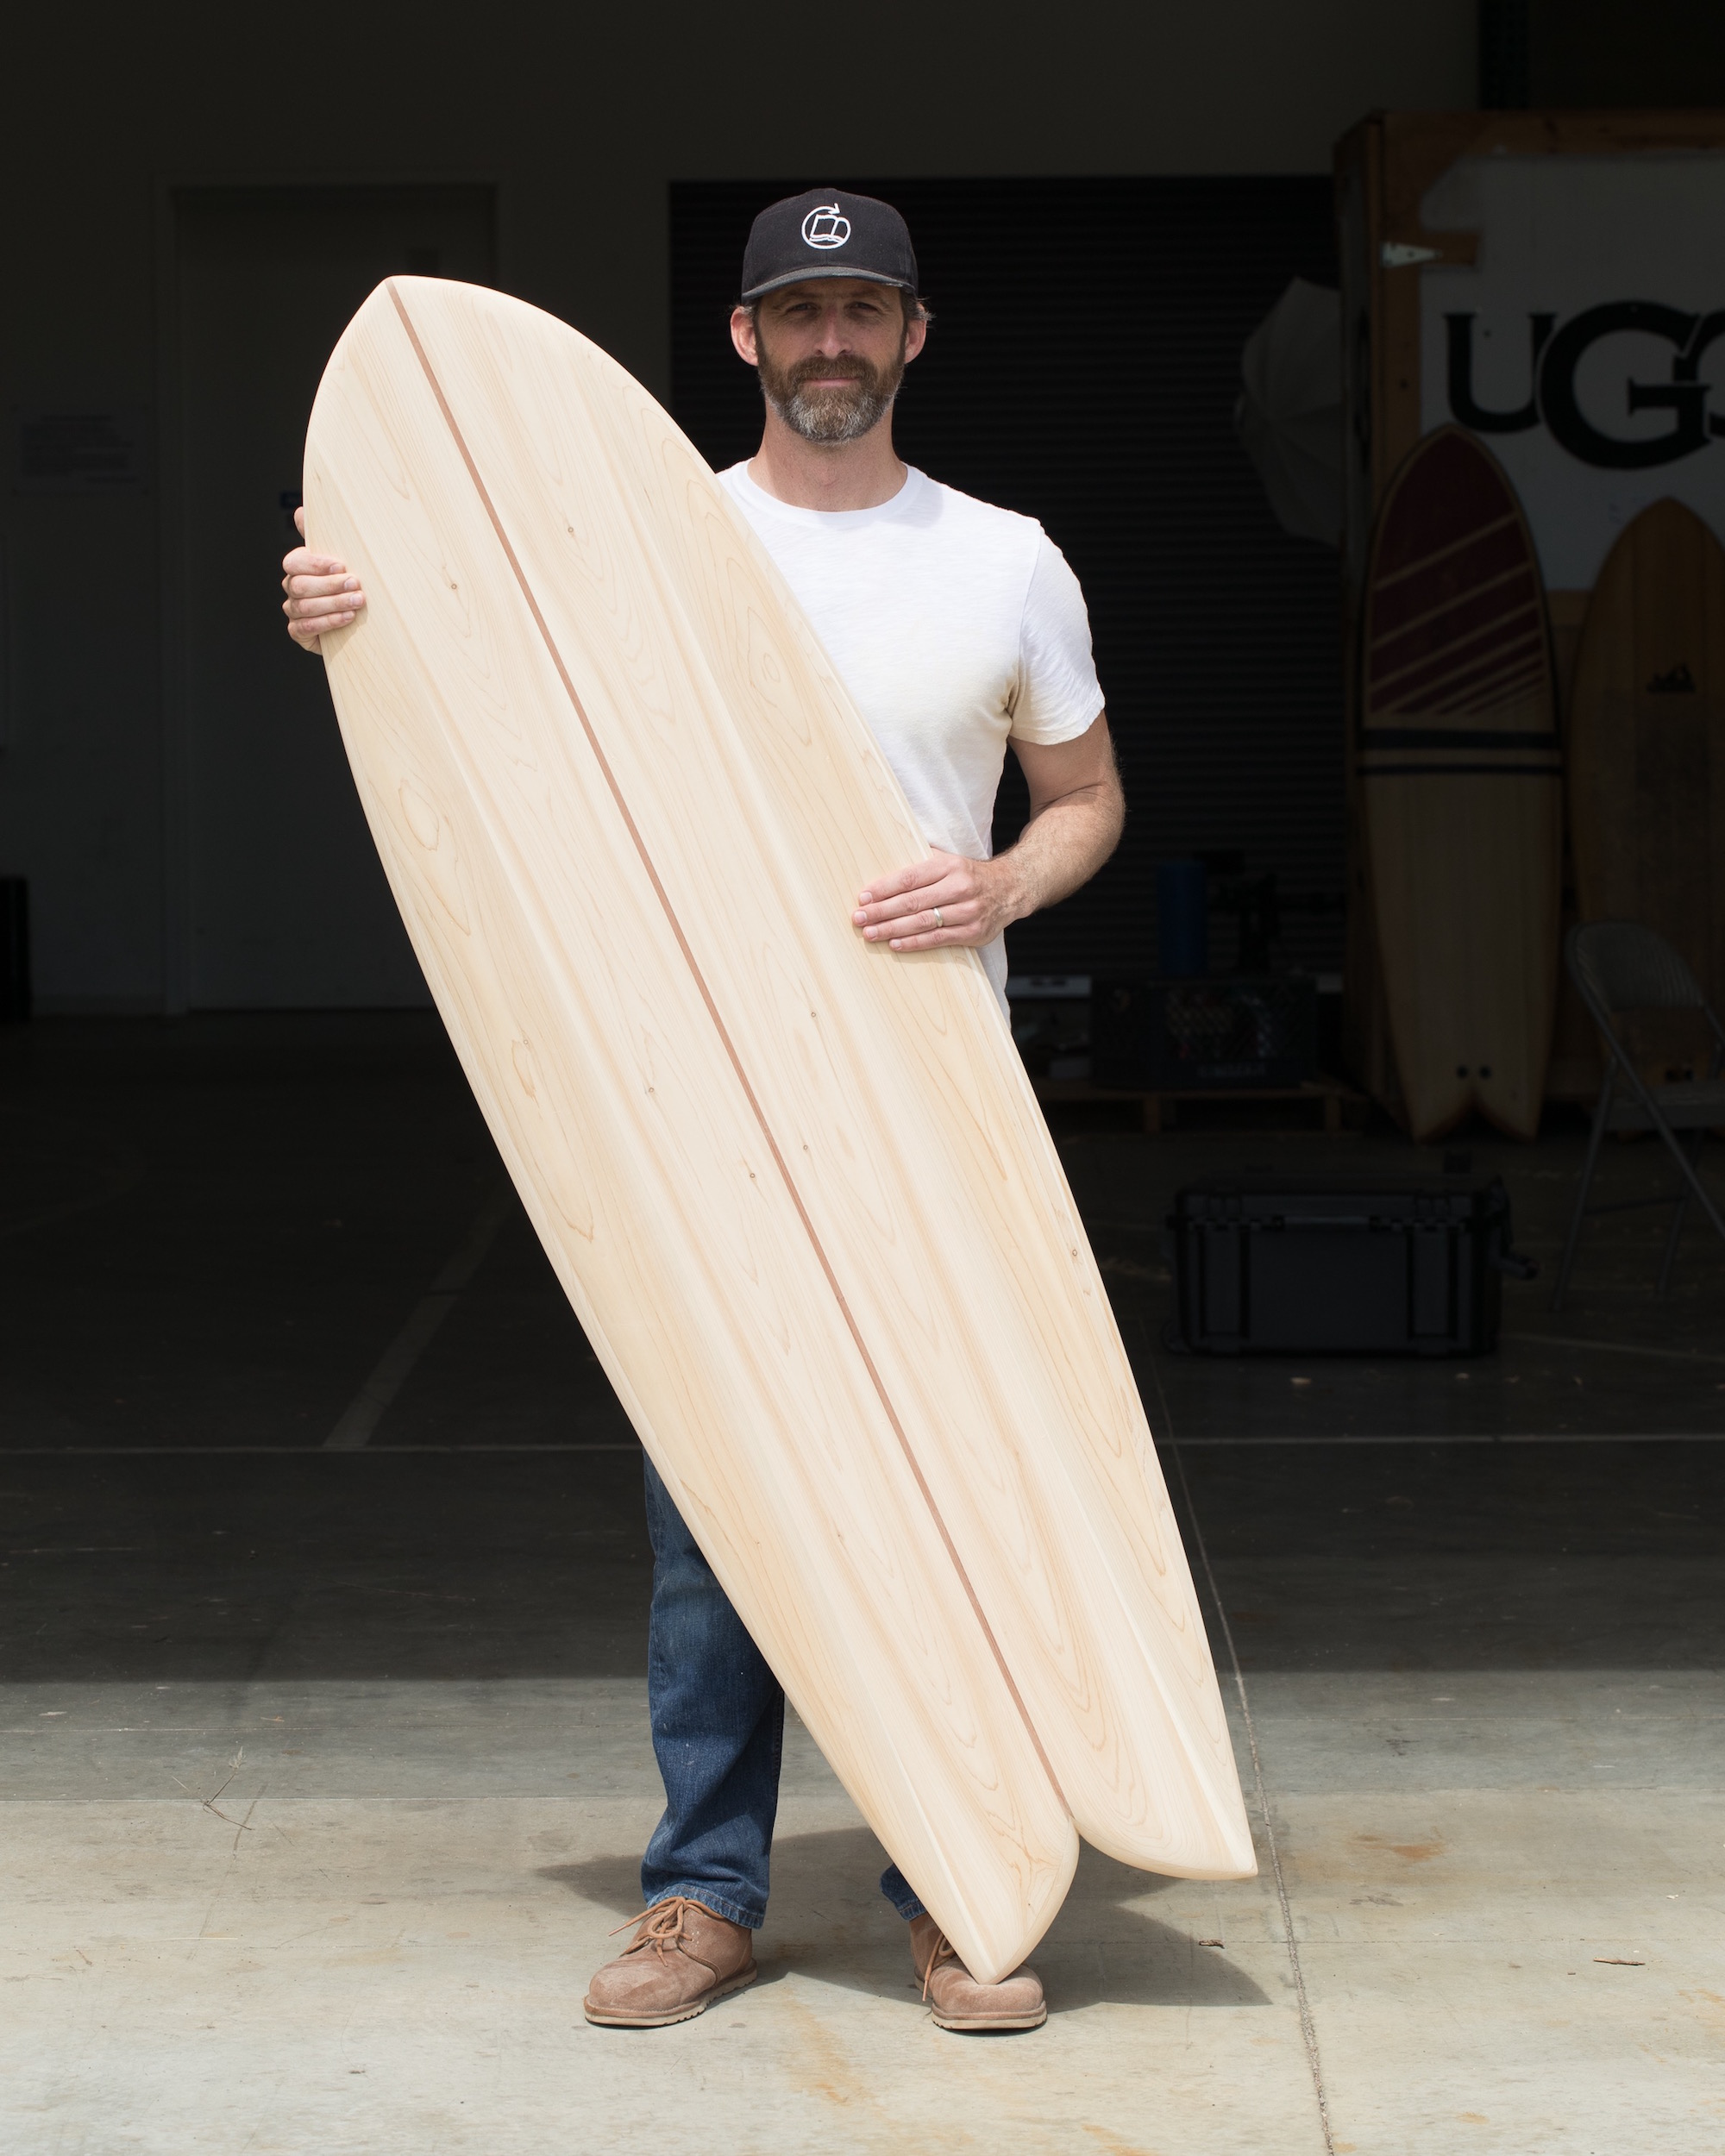 Cory proudly displays his Wherry Fish surfboard.